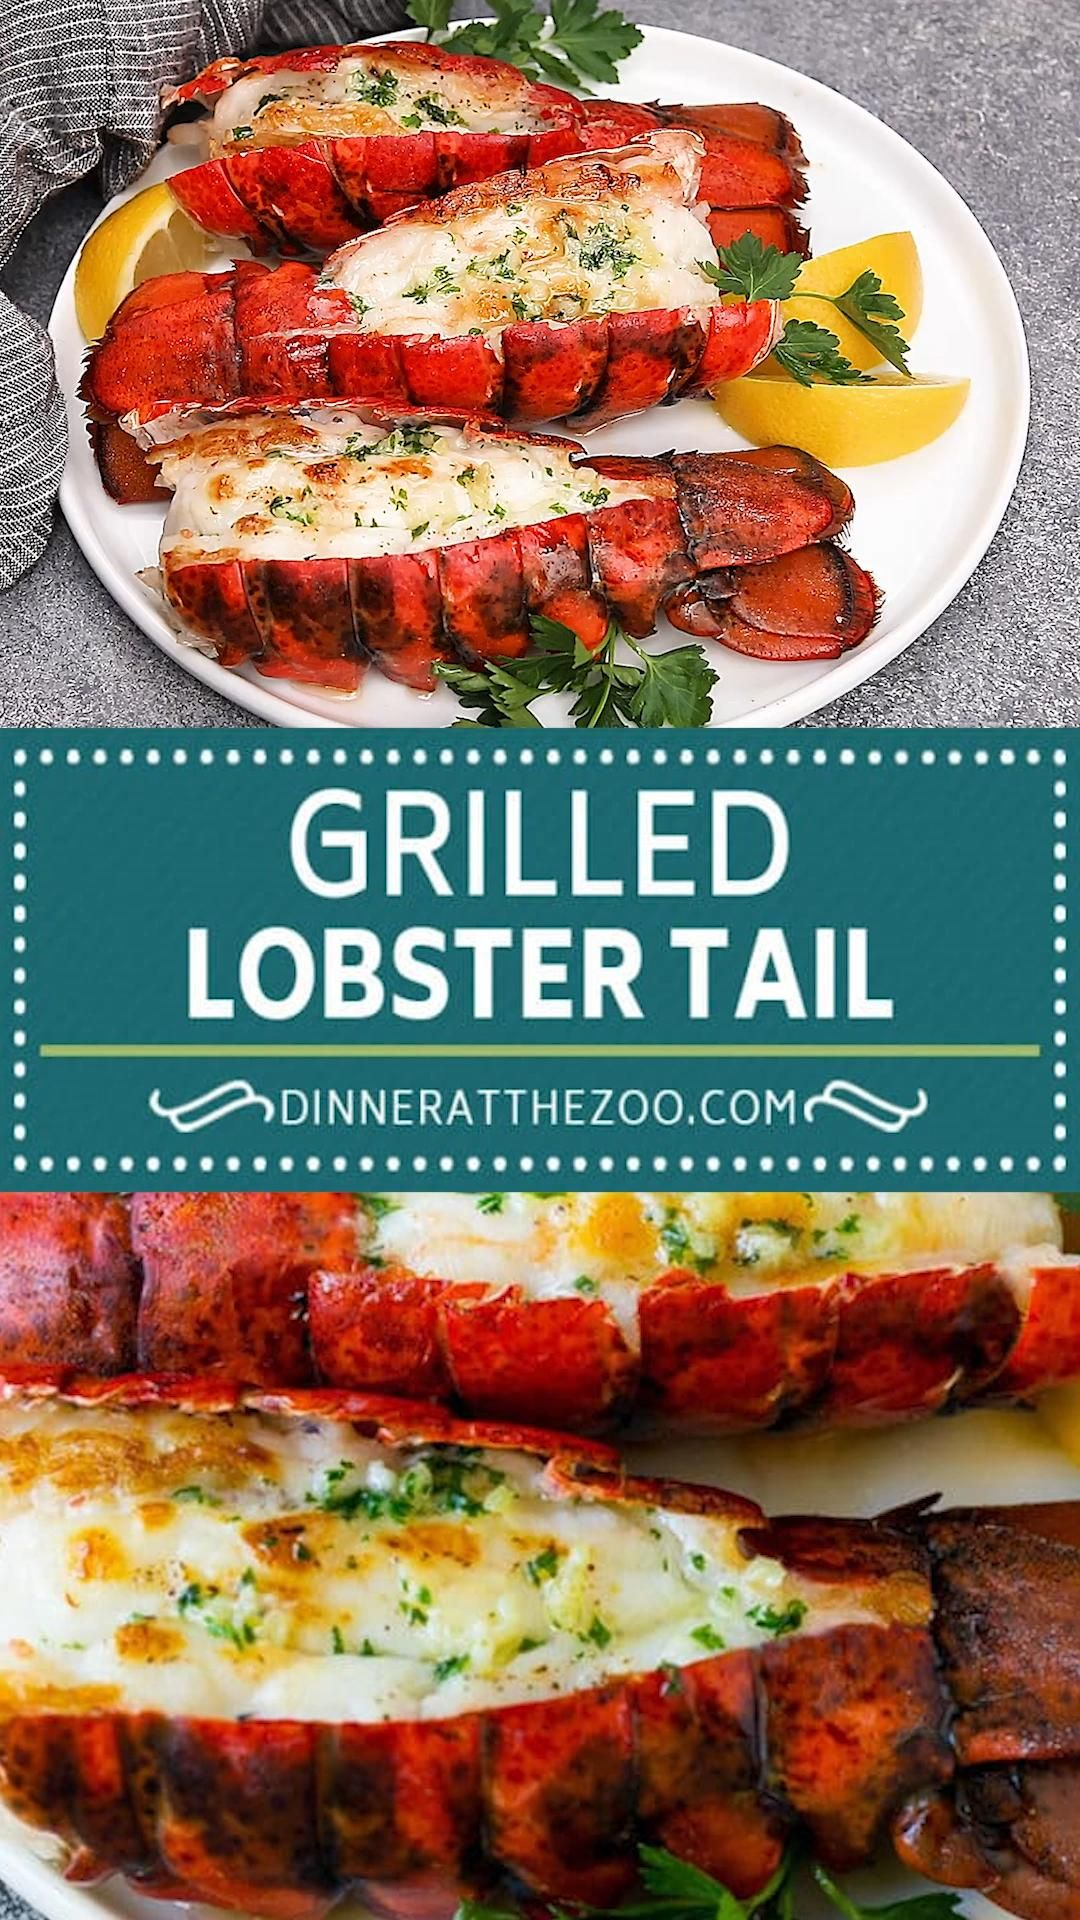 Grilled lobster tails with garlic butter is an easy and elegant meal option!